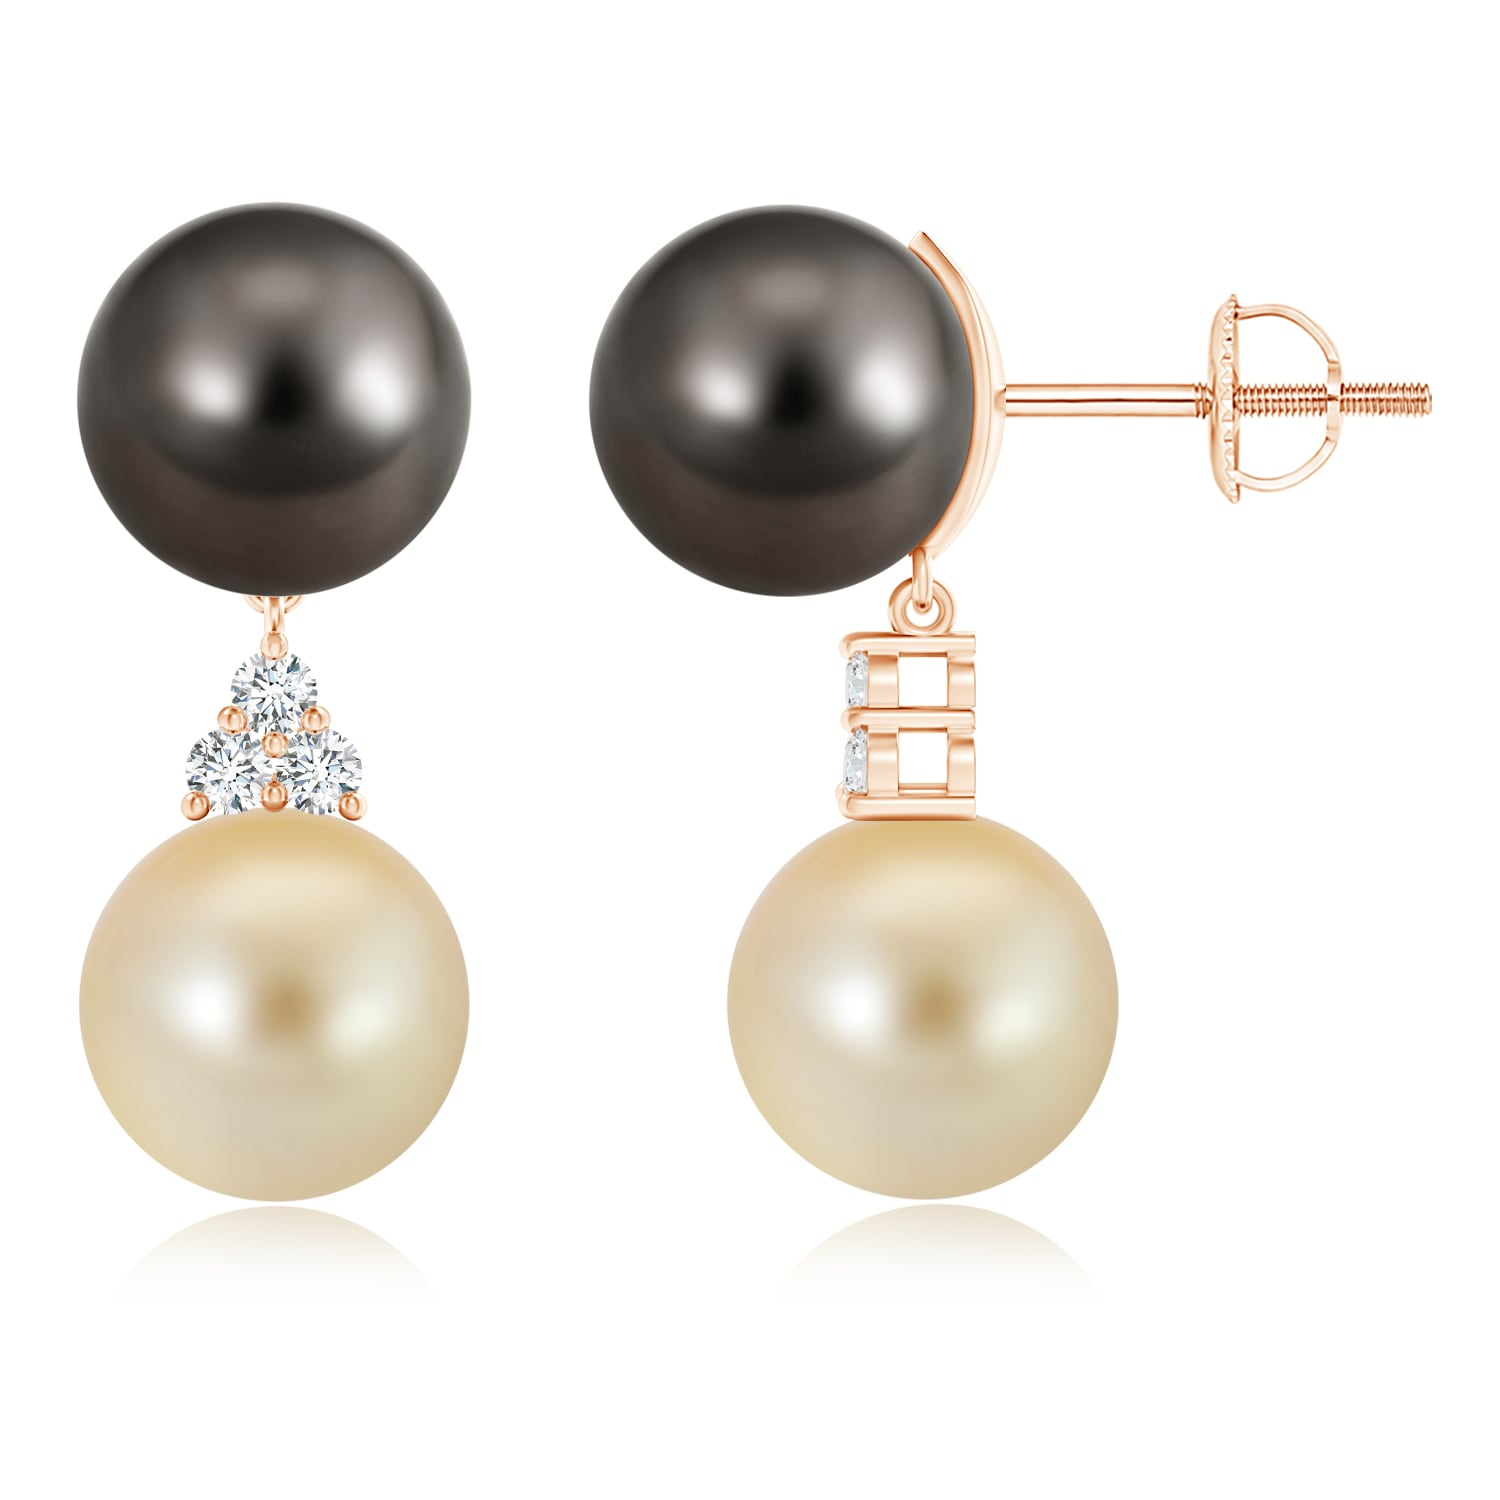 June Birthstone Jewelry Tahitian & Golden South Sea Cultured Pearl Earrings in 14K Rose Gold (10mm Tahitian Cultured... by Angara.com